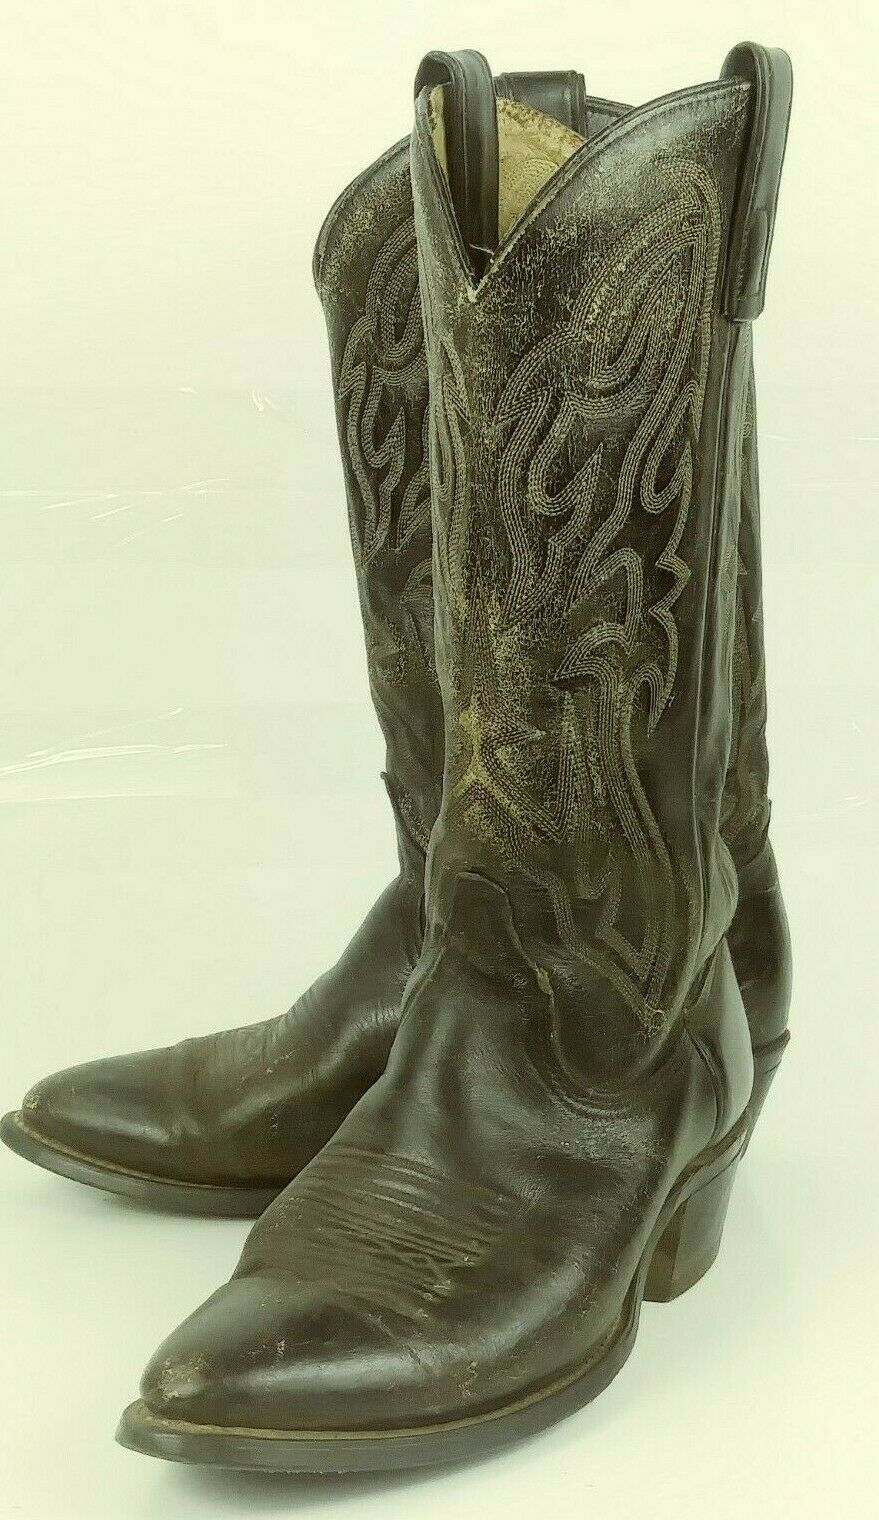 Texas 7800 Mens Boots Cowboy US 8 EE Black Leather Distressed rockabilly 6164